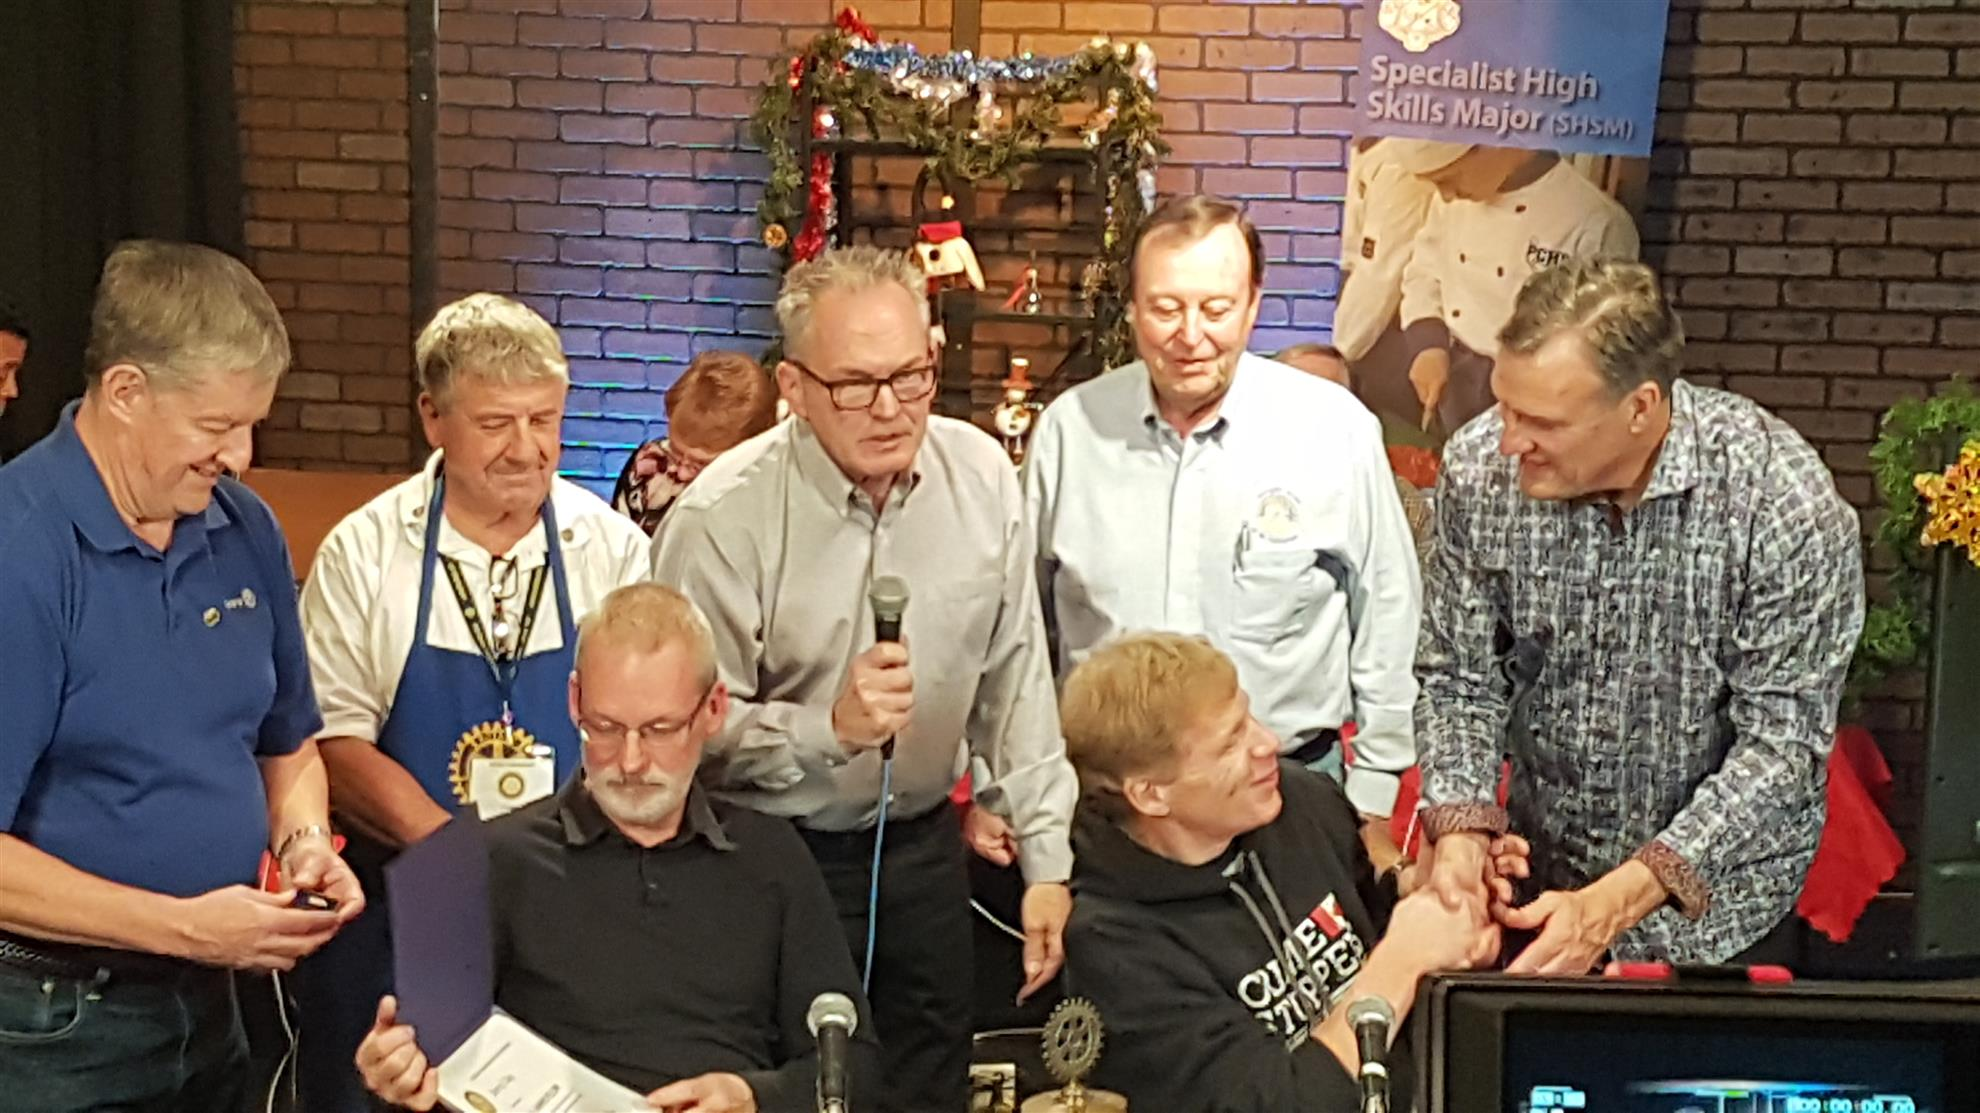 Stories Rotary District 7090 Arlington Tvbra2k Tv Bridge Kit Prewired Inwall Power For Clubs Of Fonthill Fort Erie Niagara Falls Sunrise St Catharines And Welland Joined Together To Develop A Mega Auction